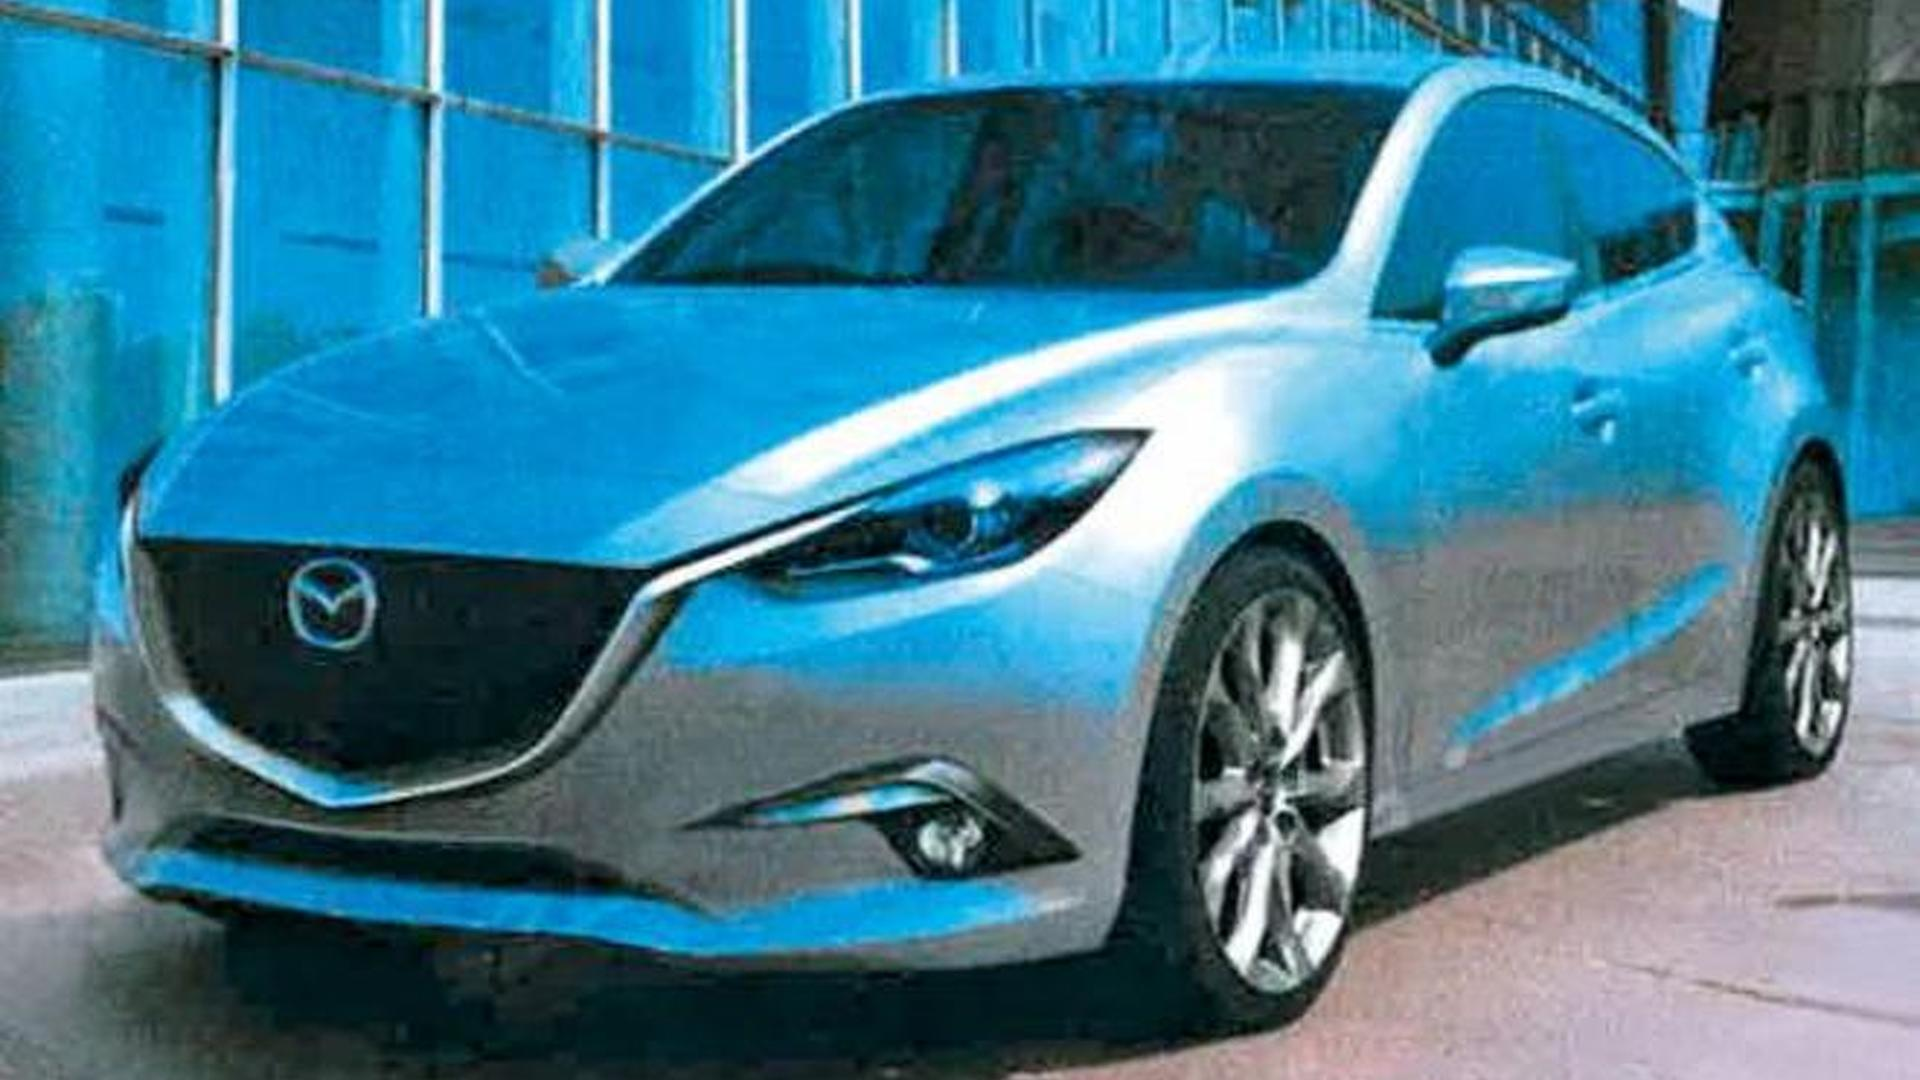 2014 Mazda3 first images leaked